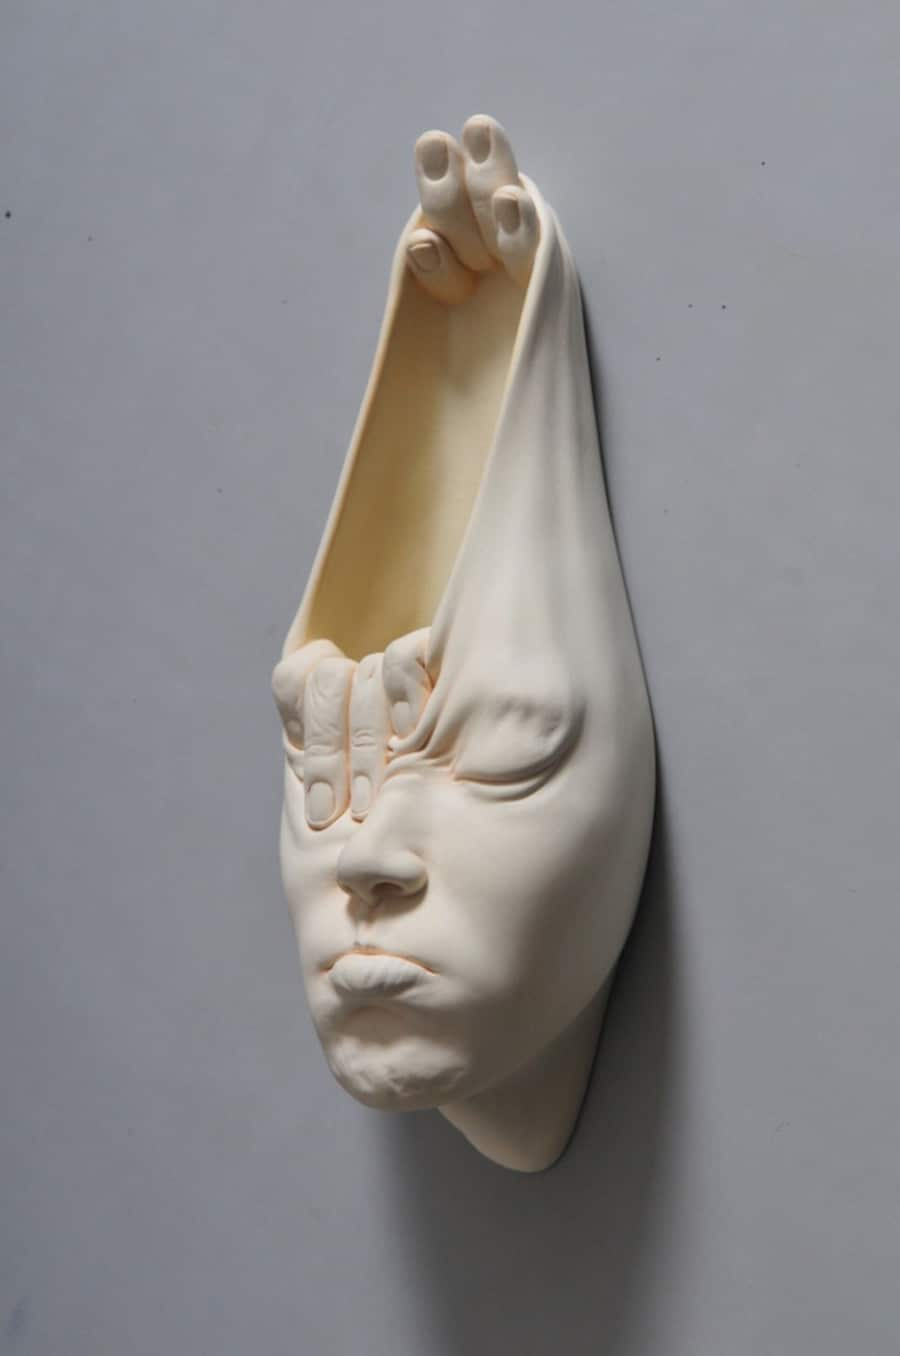 johnson tsang surreal sculpture in porcelain